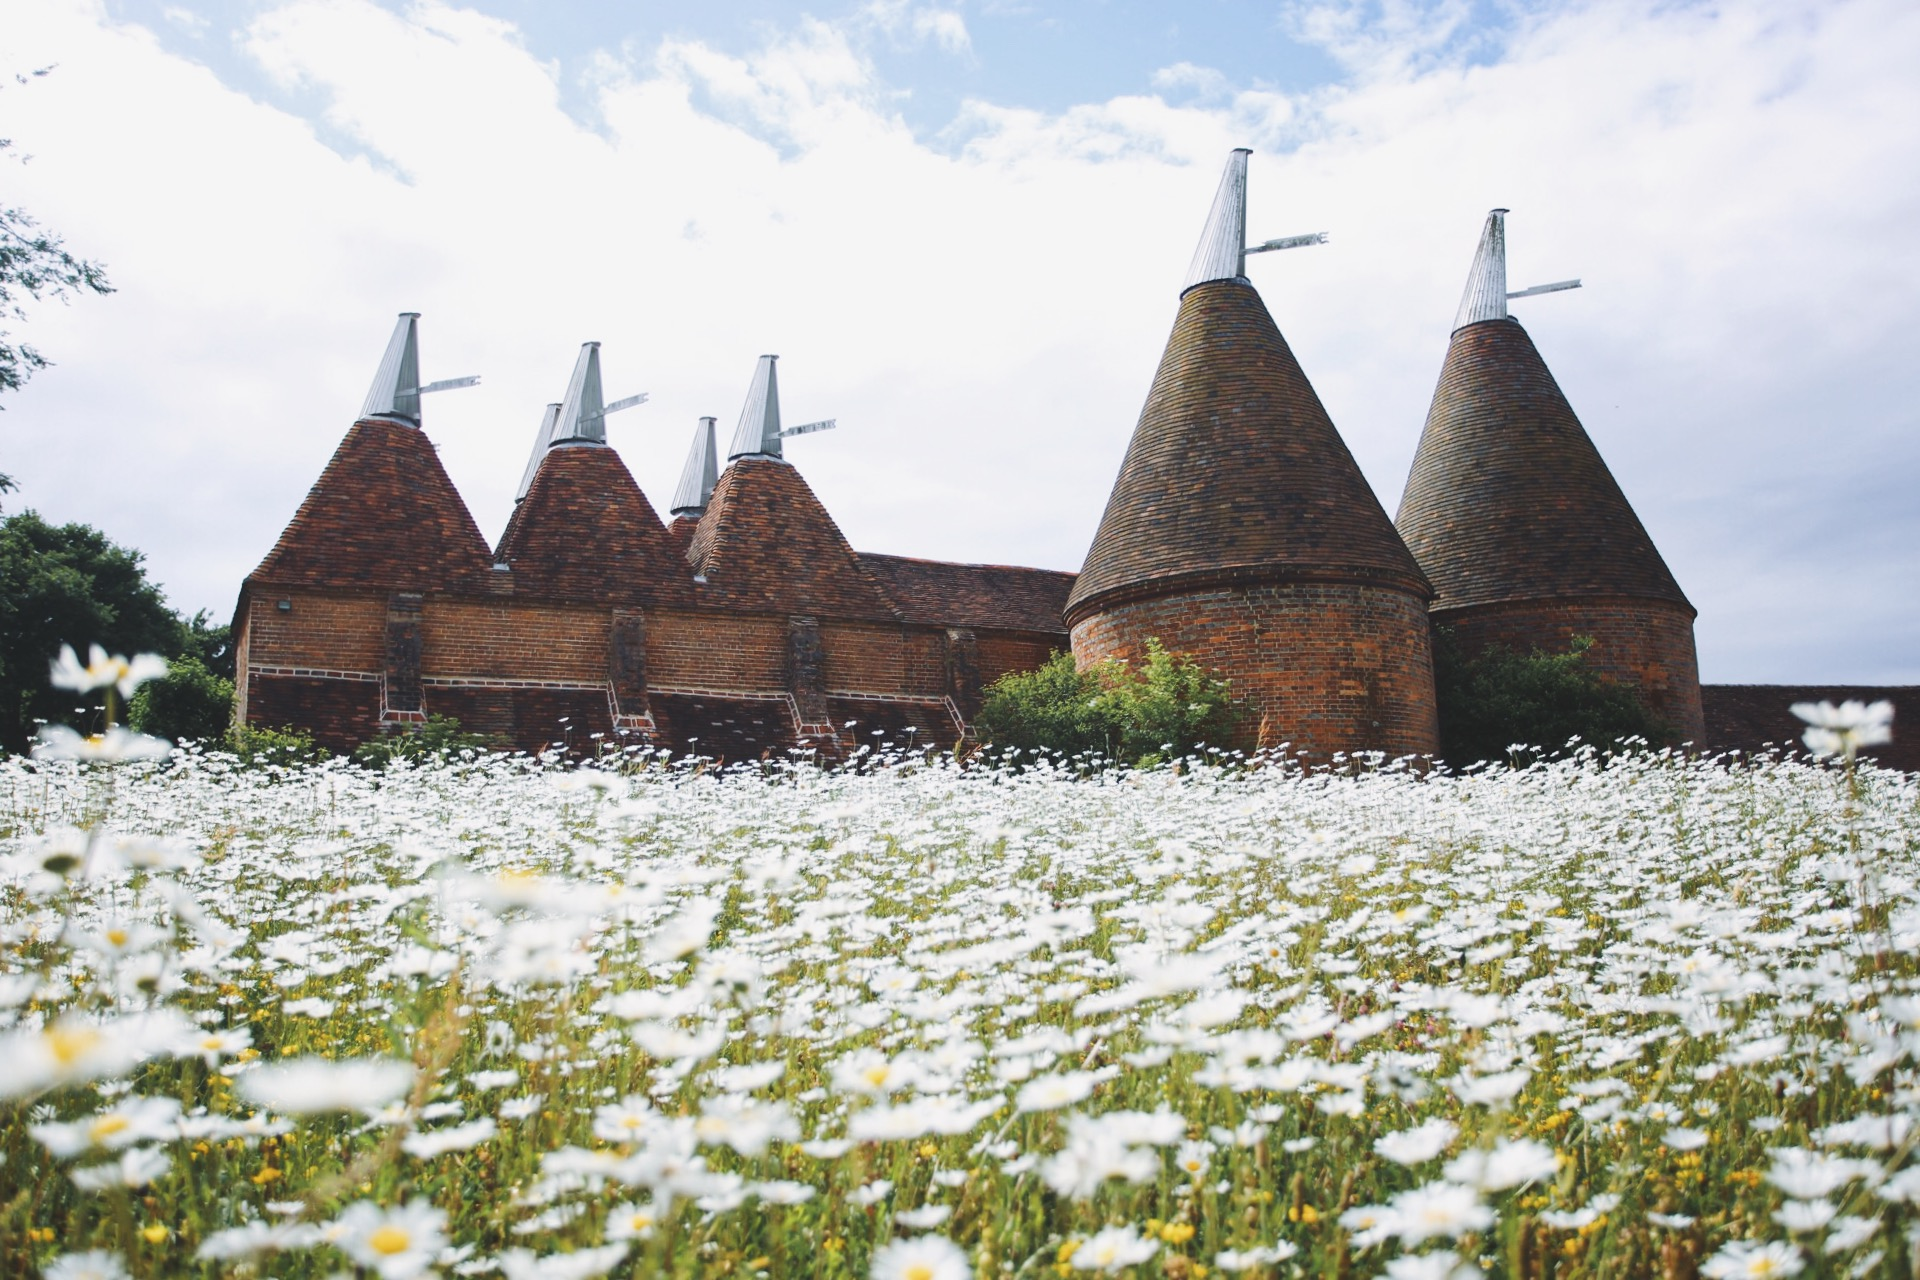 Camomile Field and Oast Houses at Sissinghurst Castle, Kent